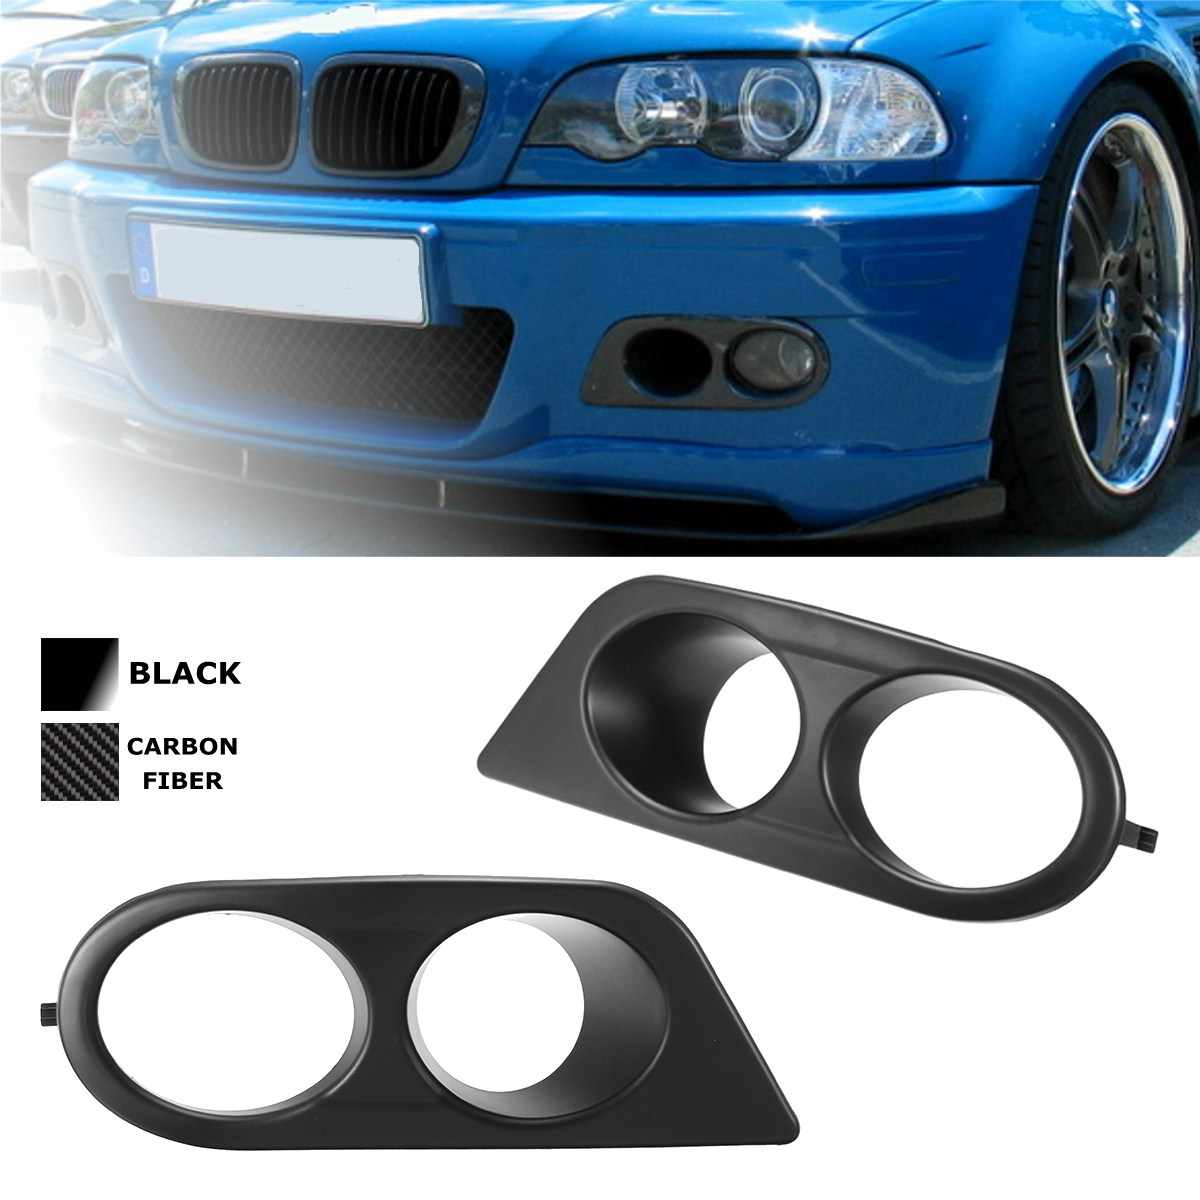 Pair Car Fog Light Covers Surround Air Duct For Bmw E46 M3 2001 2006 Carbon Fiber Glossy Black